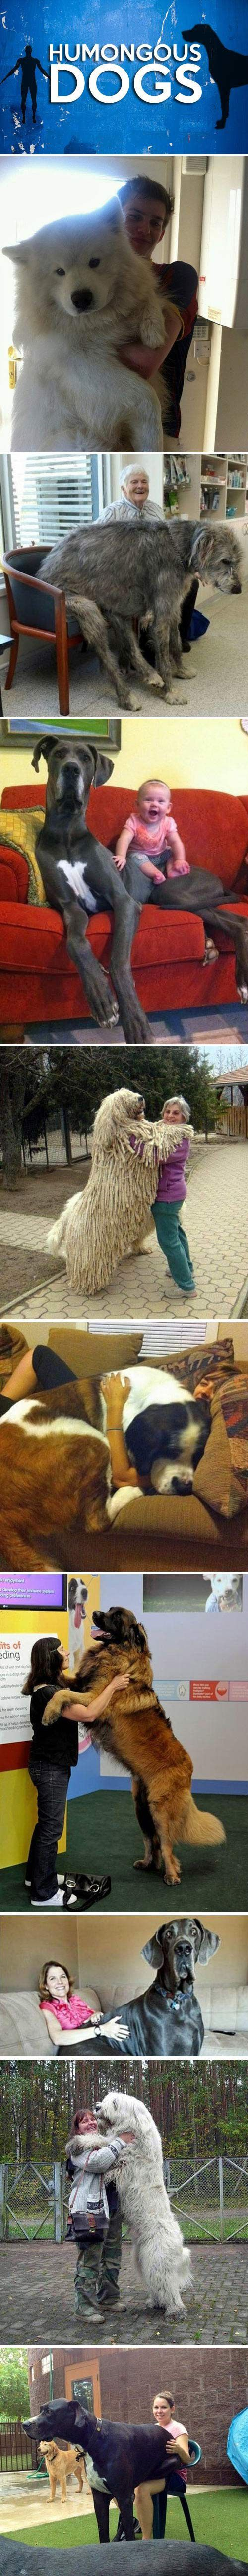 Humongous Dogs… I want them all!